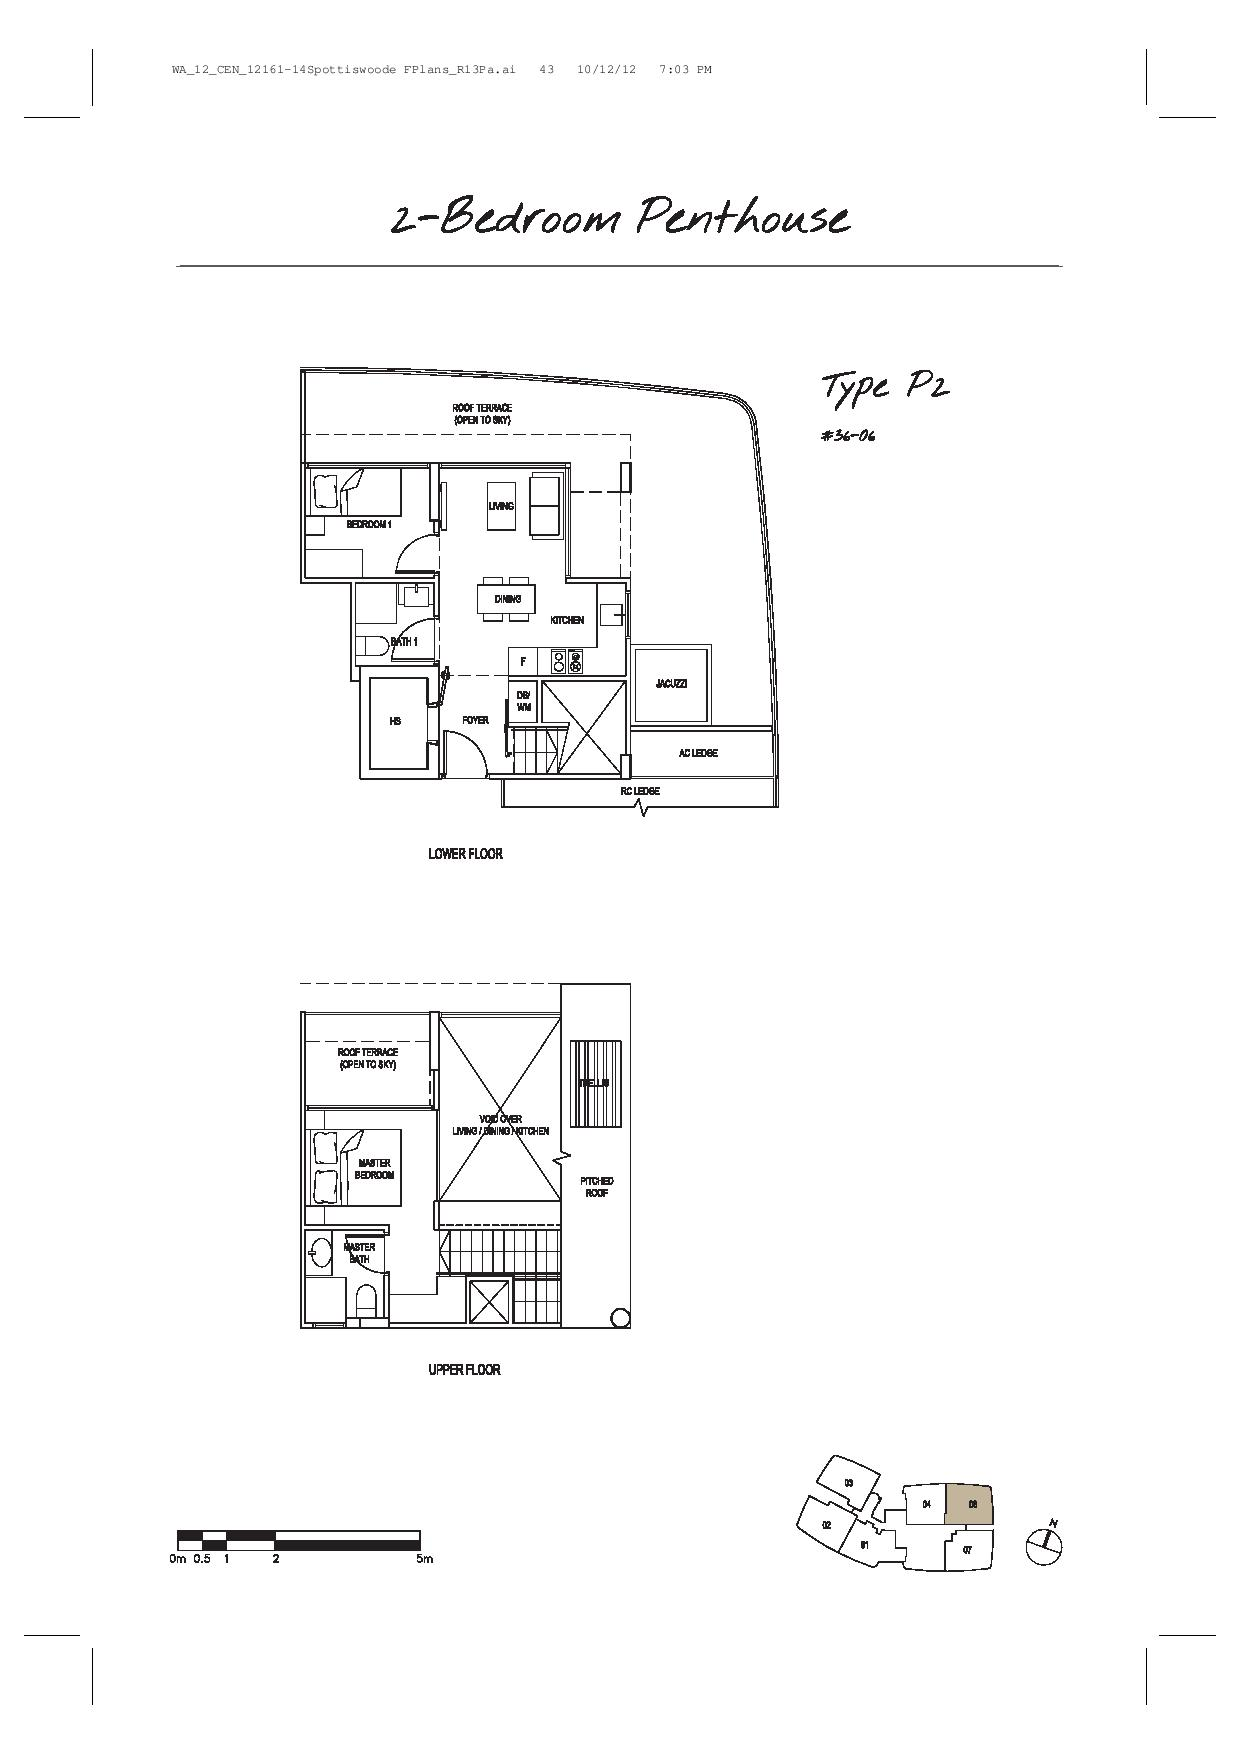 Spottiswoode Suites 2 Bedroom Penthouse Type P2 Floor Plans